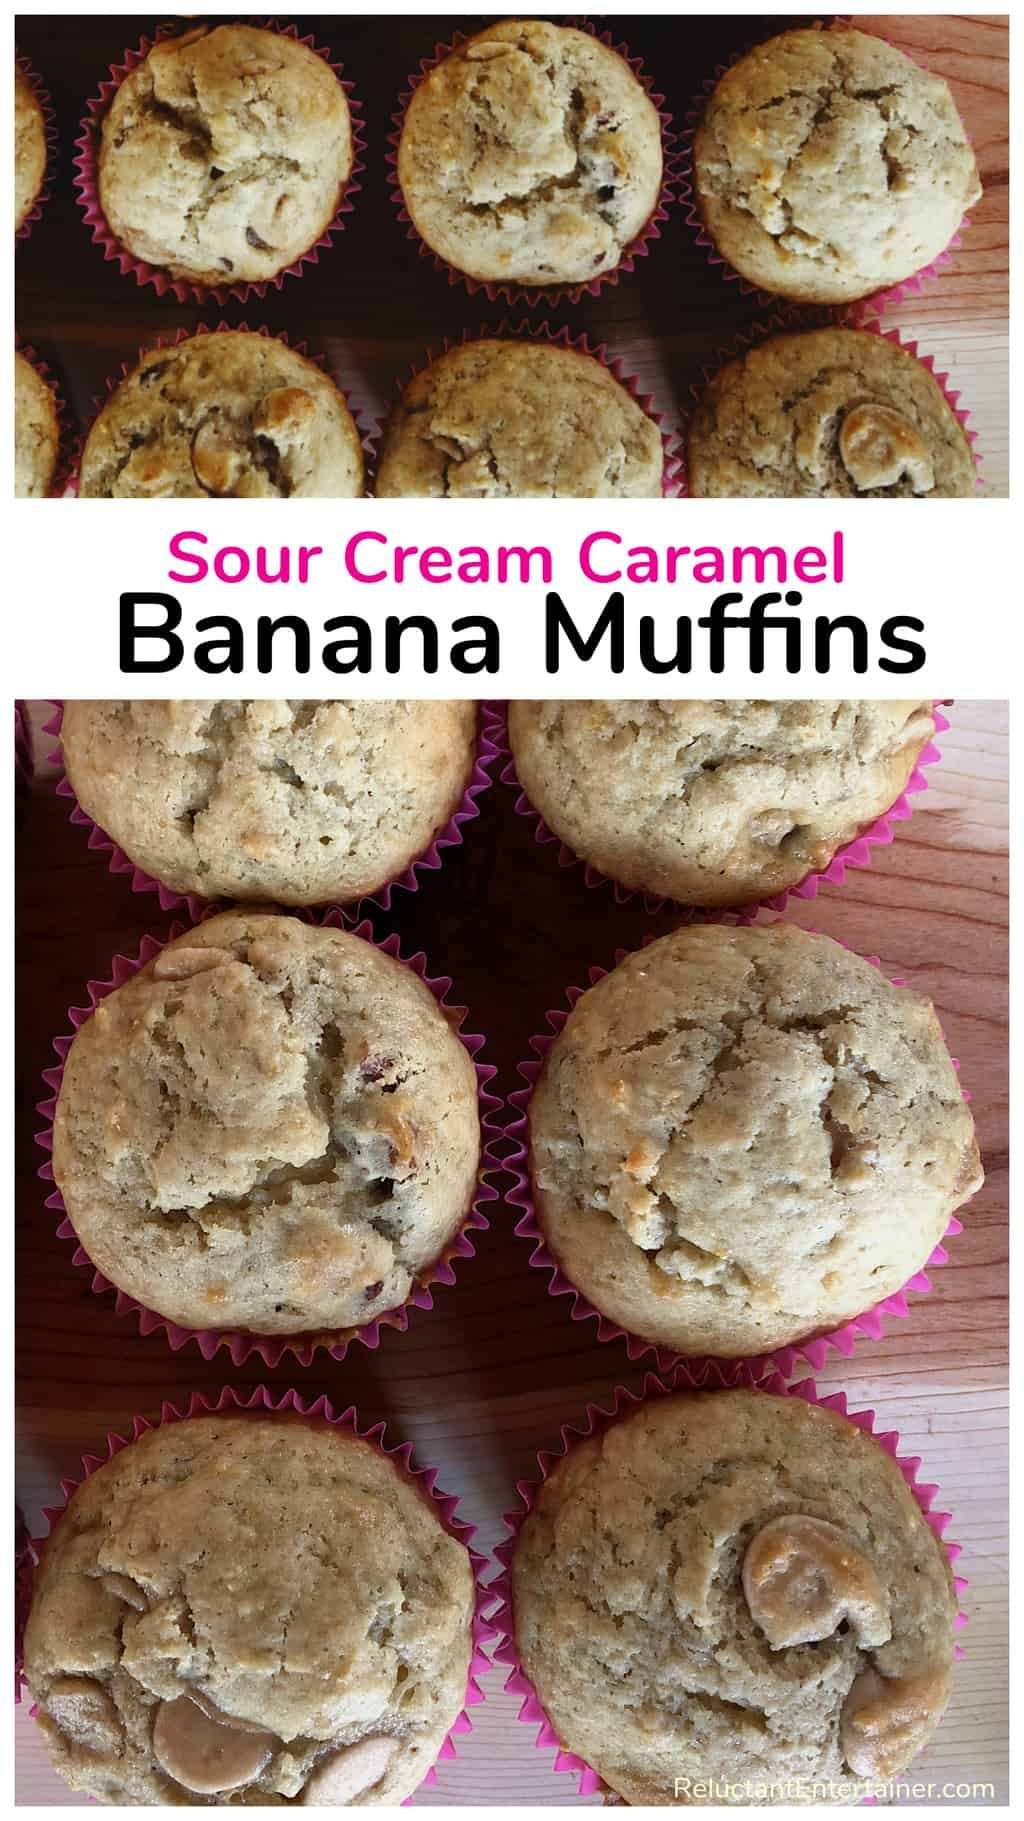 Sour Cream Caramel Banana Muffins Recipe Banana Muffin Recipe Banana Muffins Banana Recipes